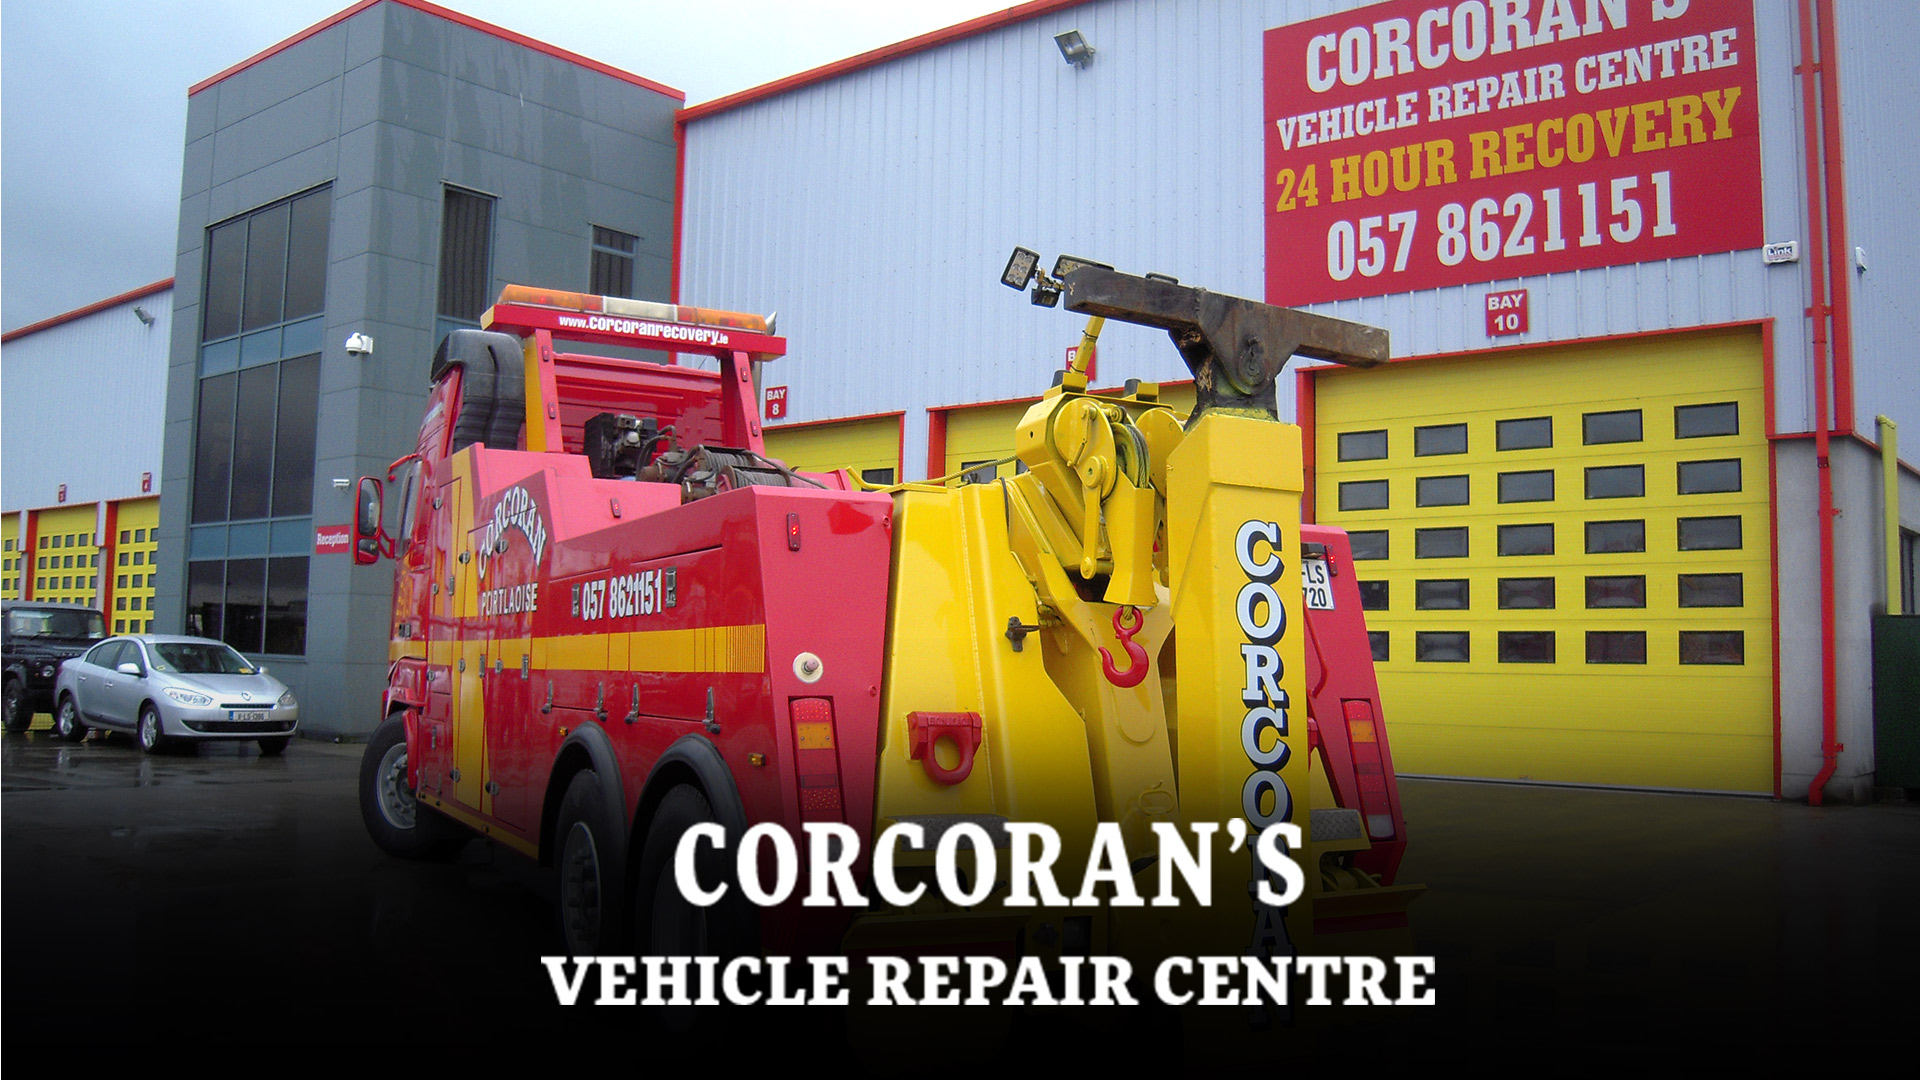 Portfolio: Corcoran's Vehicle Repair Centre